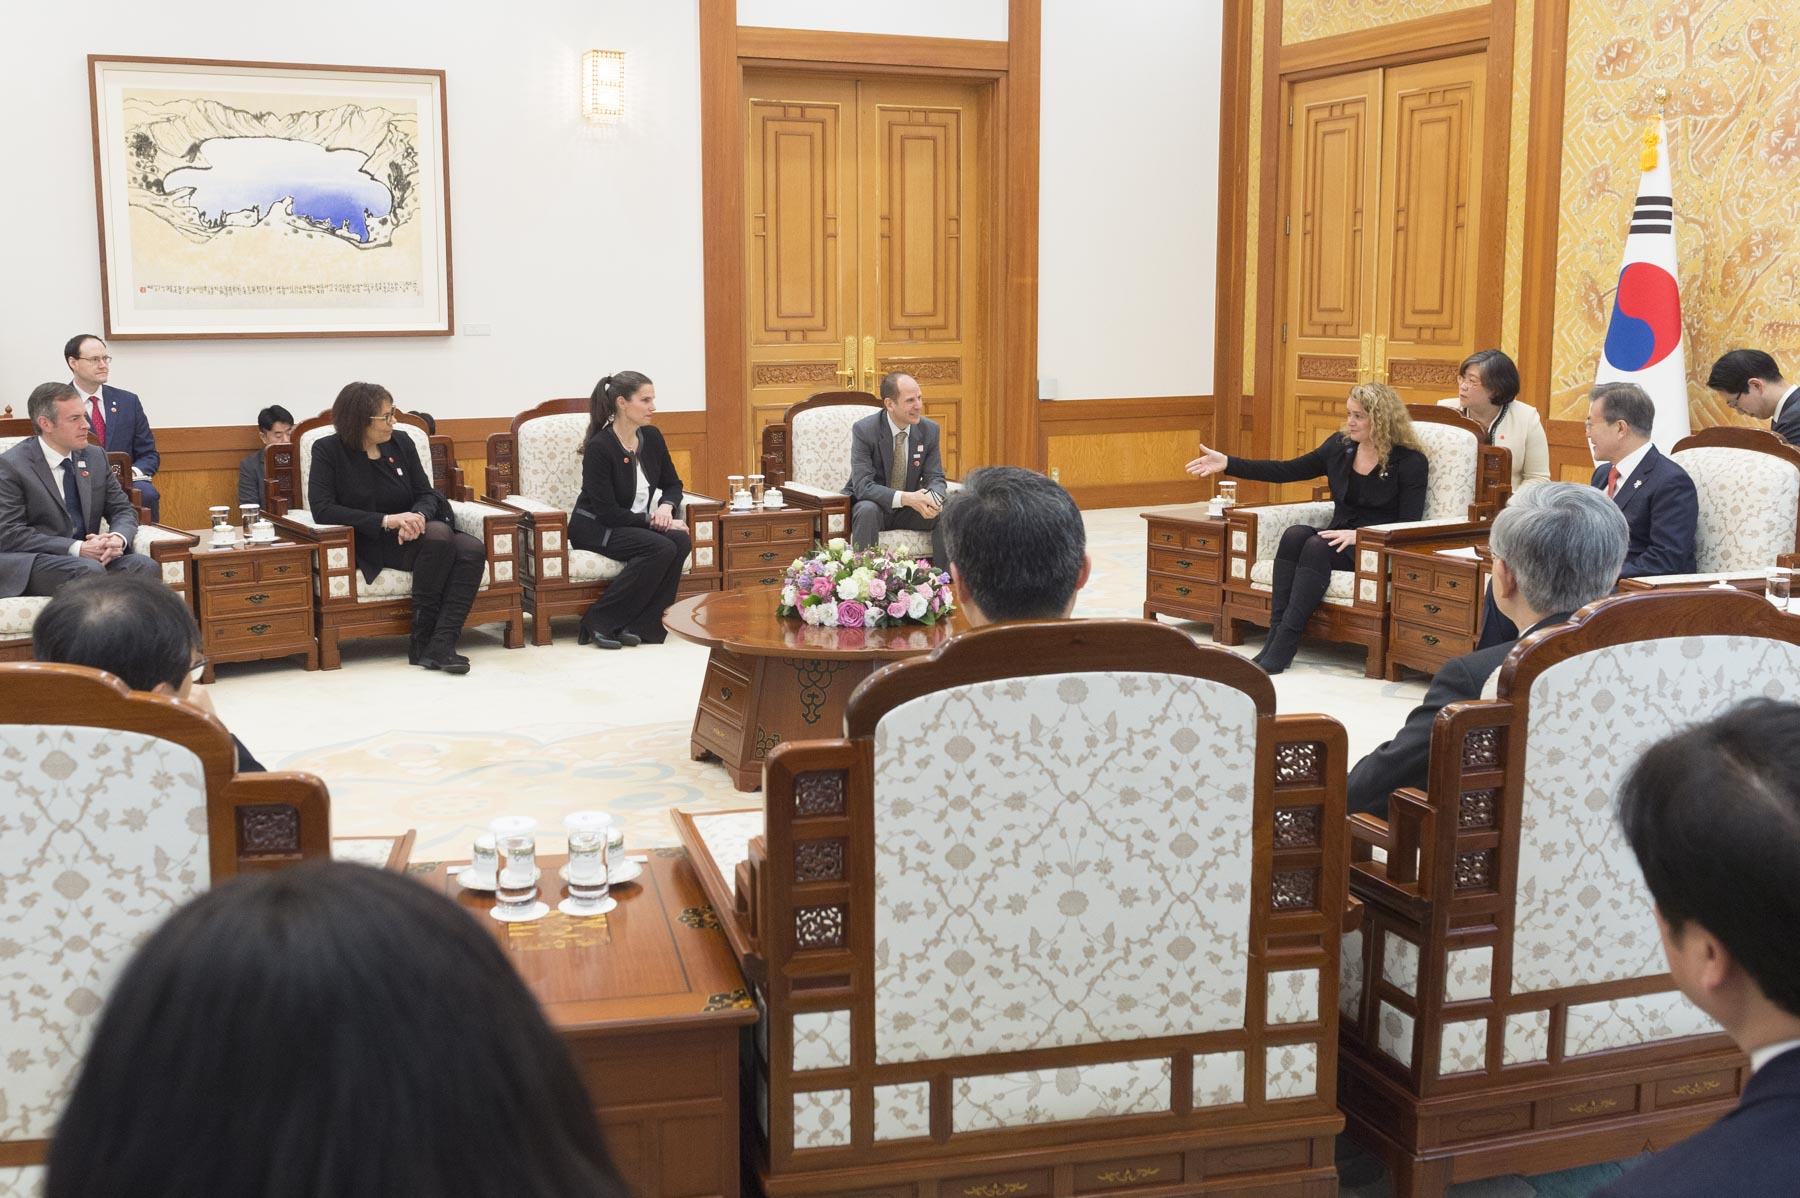 The Governor General was joined by (from right to left) Mr. Eric Walsh, Ambassador of Canada to the Republic of Corea, the Honourable Kirsty Duncan, Minister of Science and Minister of Sport and Persons with Disabilities, Mrs. Emmanuelle Sajous, Deputy Secretary at the Officethe Governor General, and Mr. Steven Goodinson, Minister-Counsellor and Senior Trade Commissioner at the Canadian Embassy in Korea.